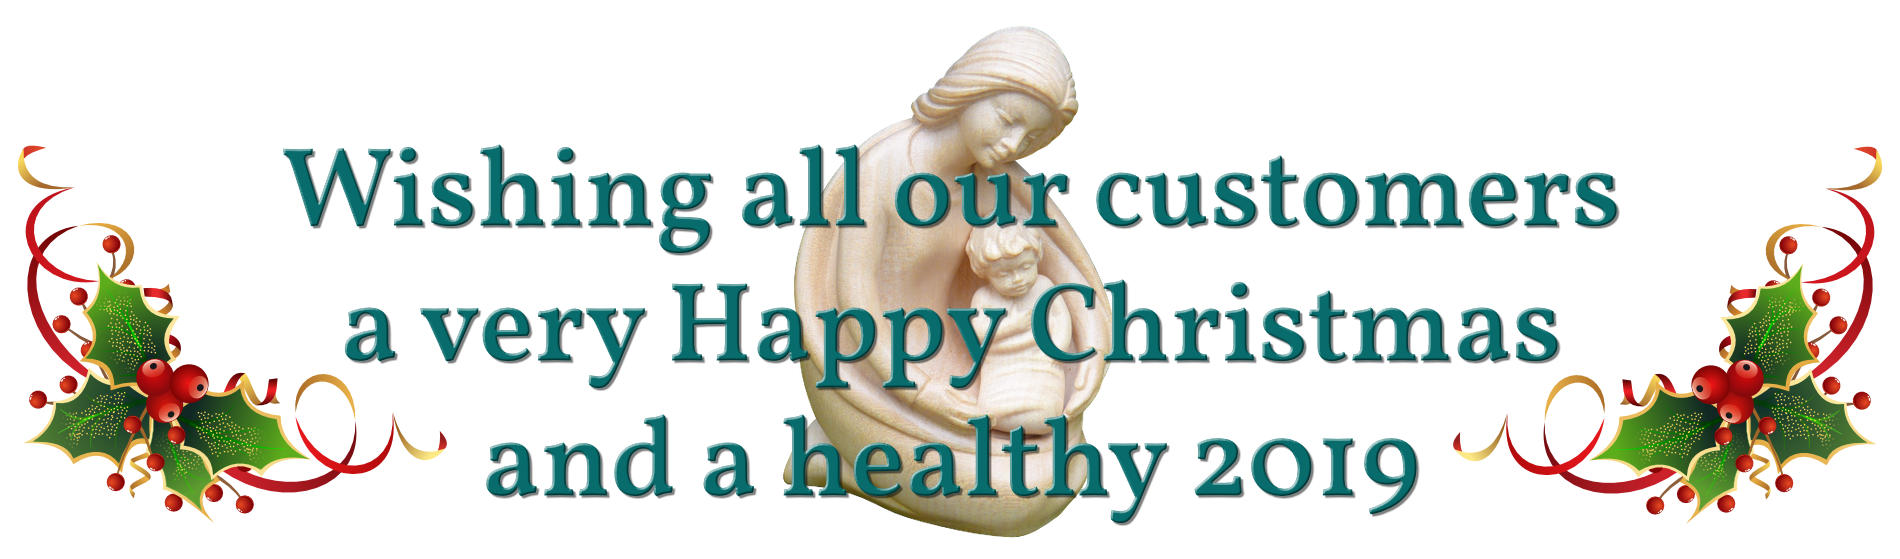 Wishing all our customers a very Happy Christmas and a healthy New Year